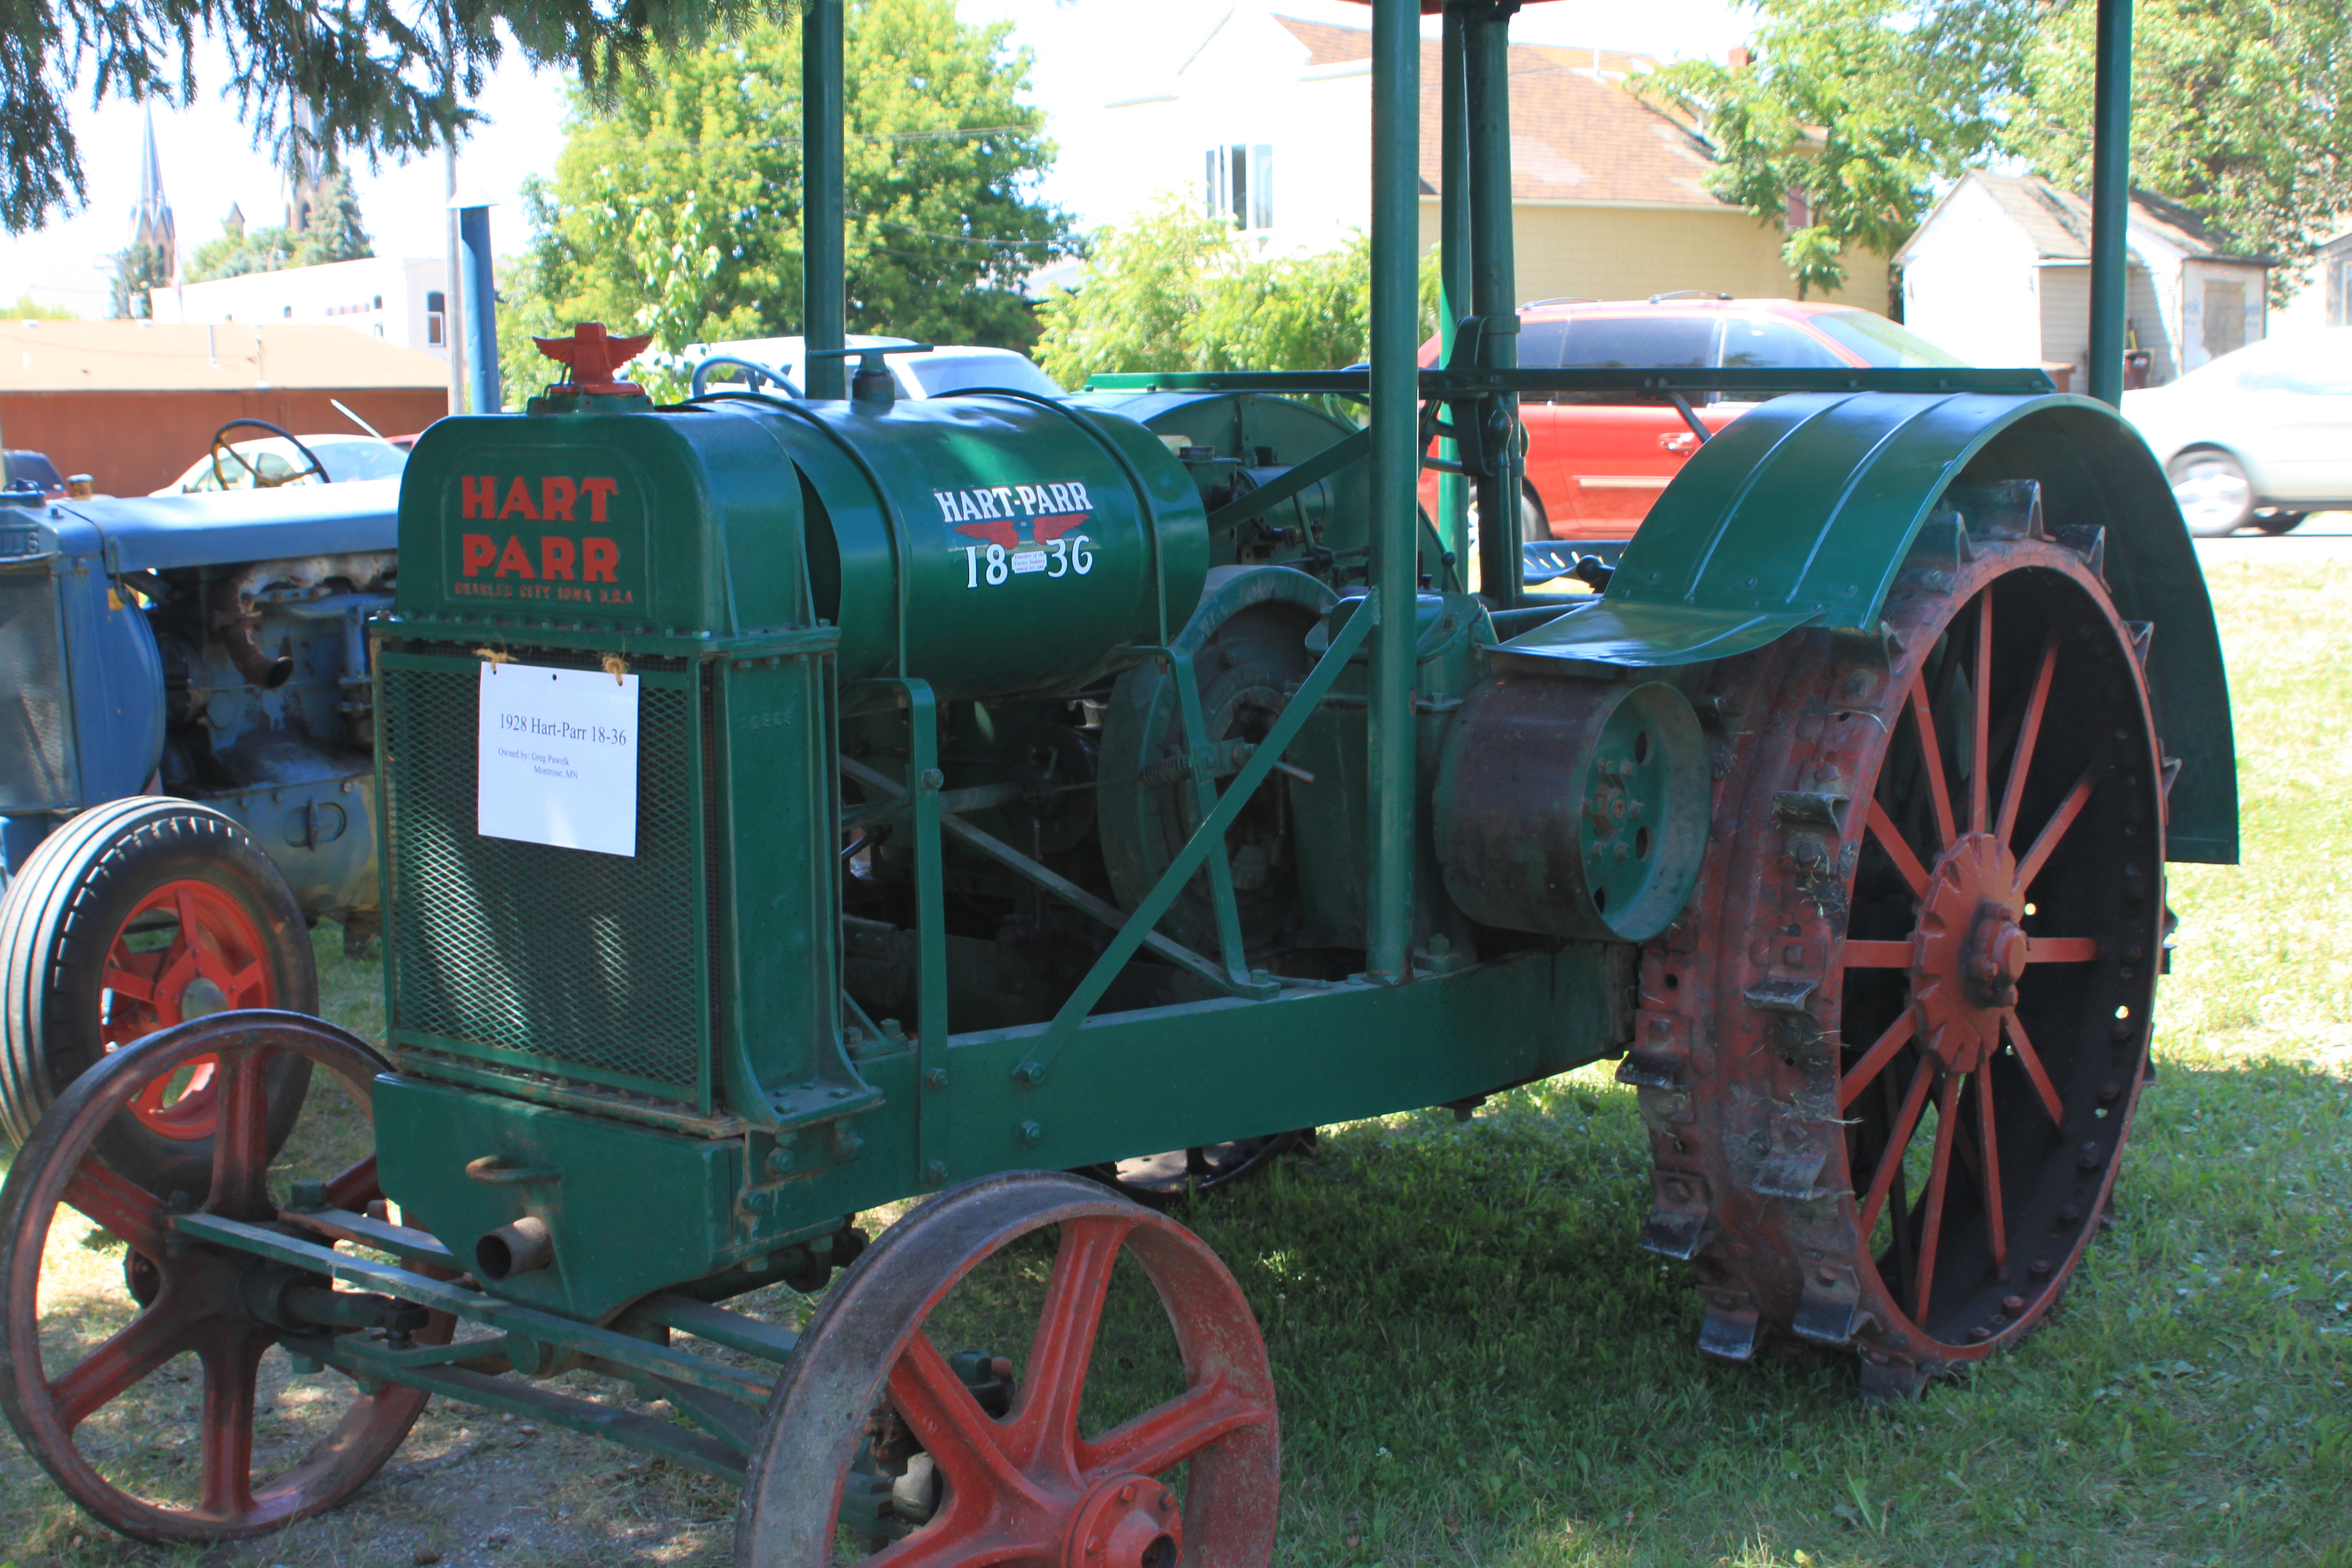 File:Hart-Parr 18-36 Tractor.jpg - Wikimedia Commons